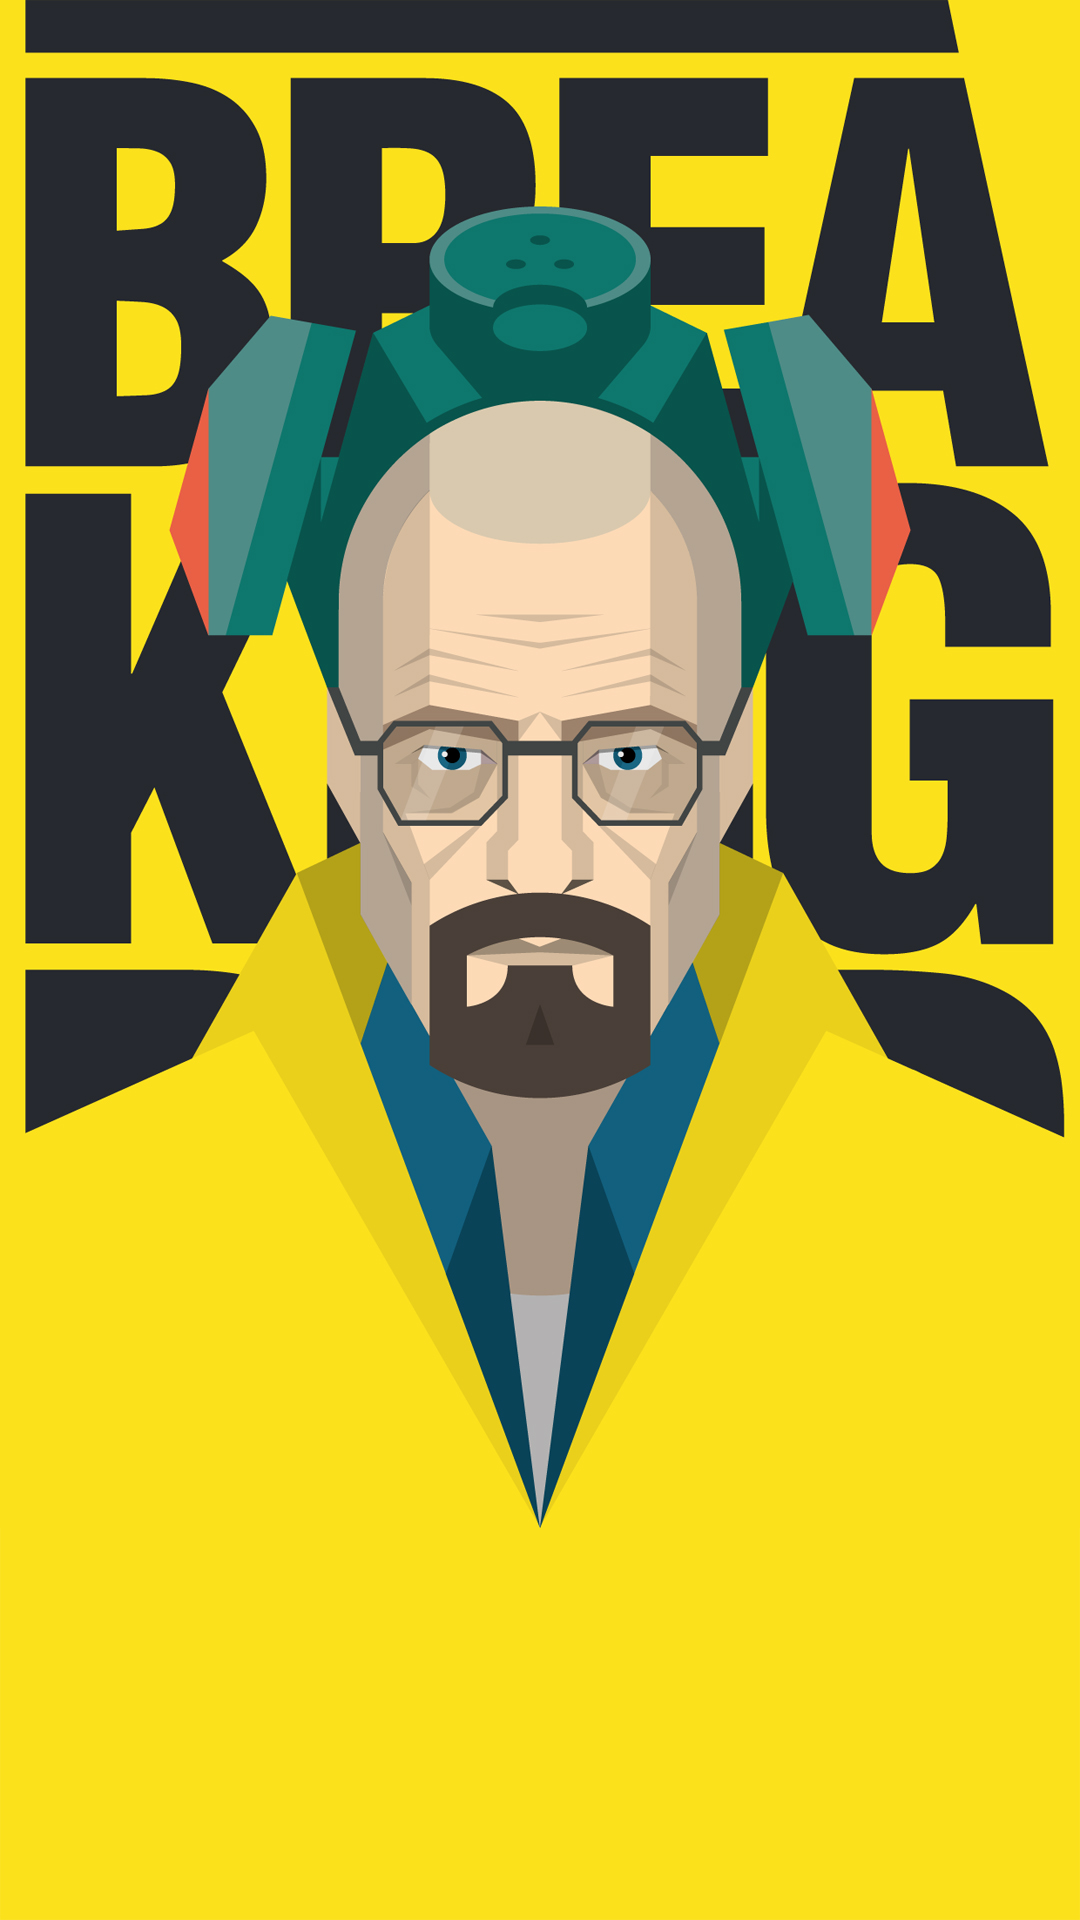 Breaking Bad Heisenberg 1080x1920 wallpaper